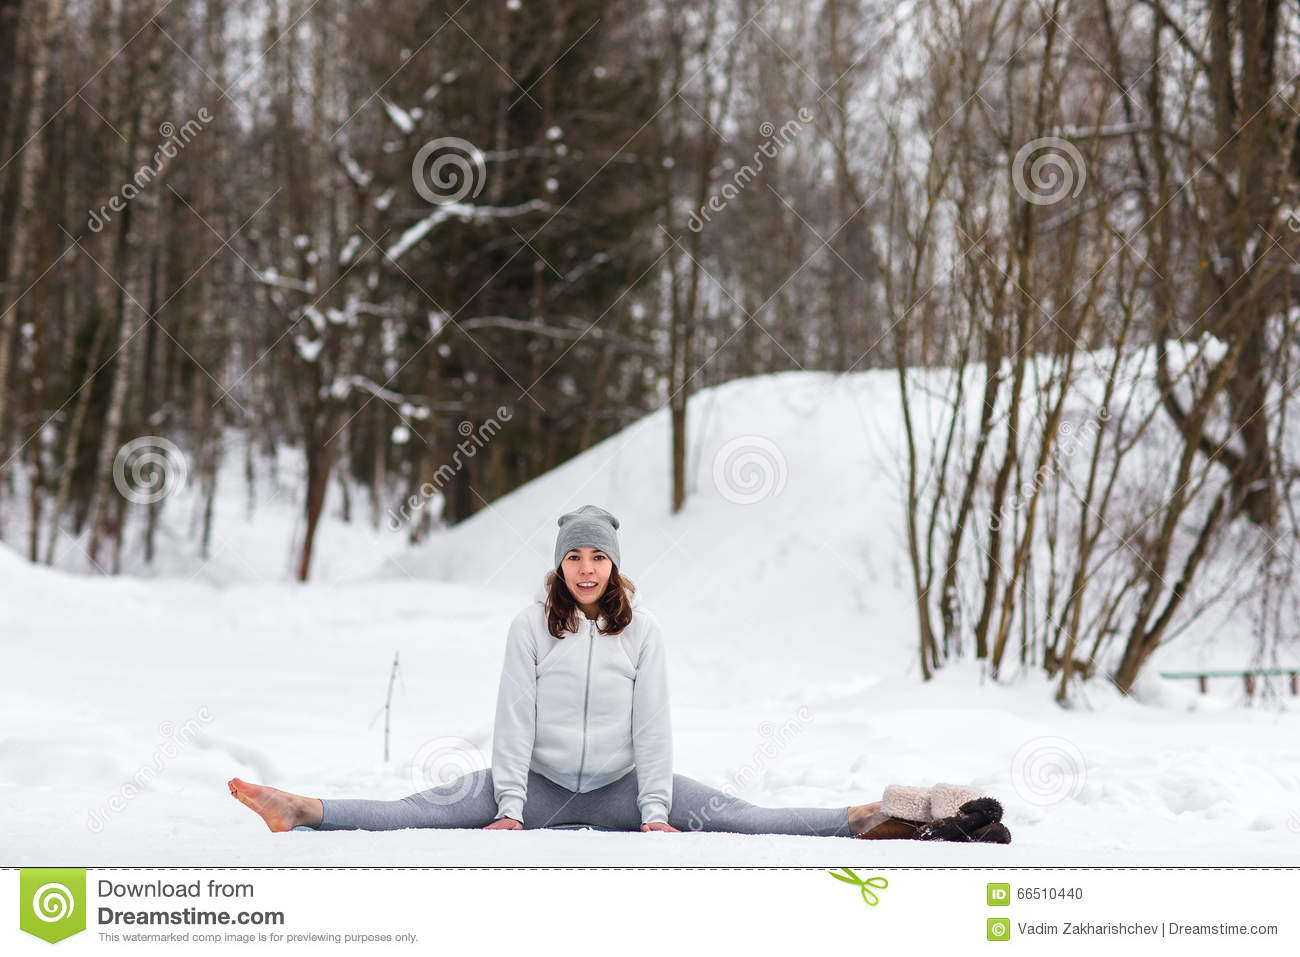 https://thumbs.dreamstime.com/z/winter-yoga-session-beautiful-place-young-athletic-woman-doing-woods-girl-engaged-fitness-park-66510440.jpg